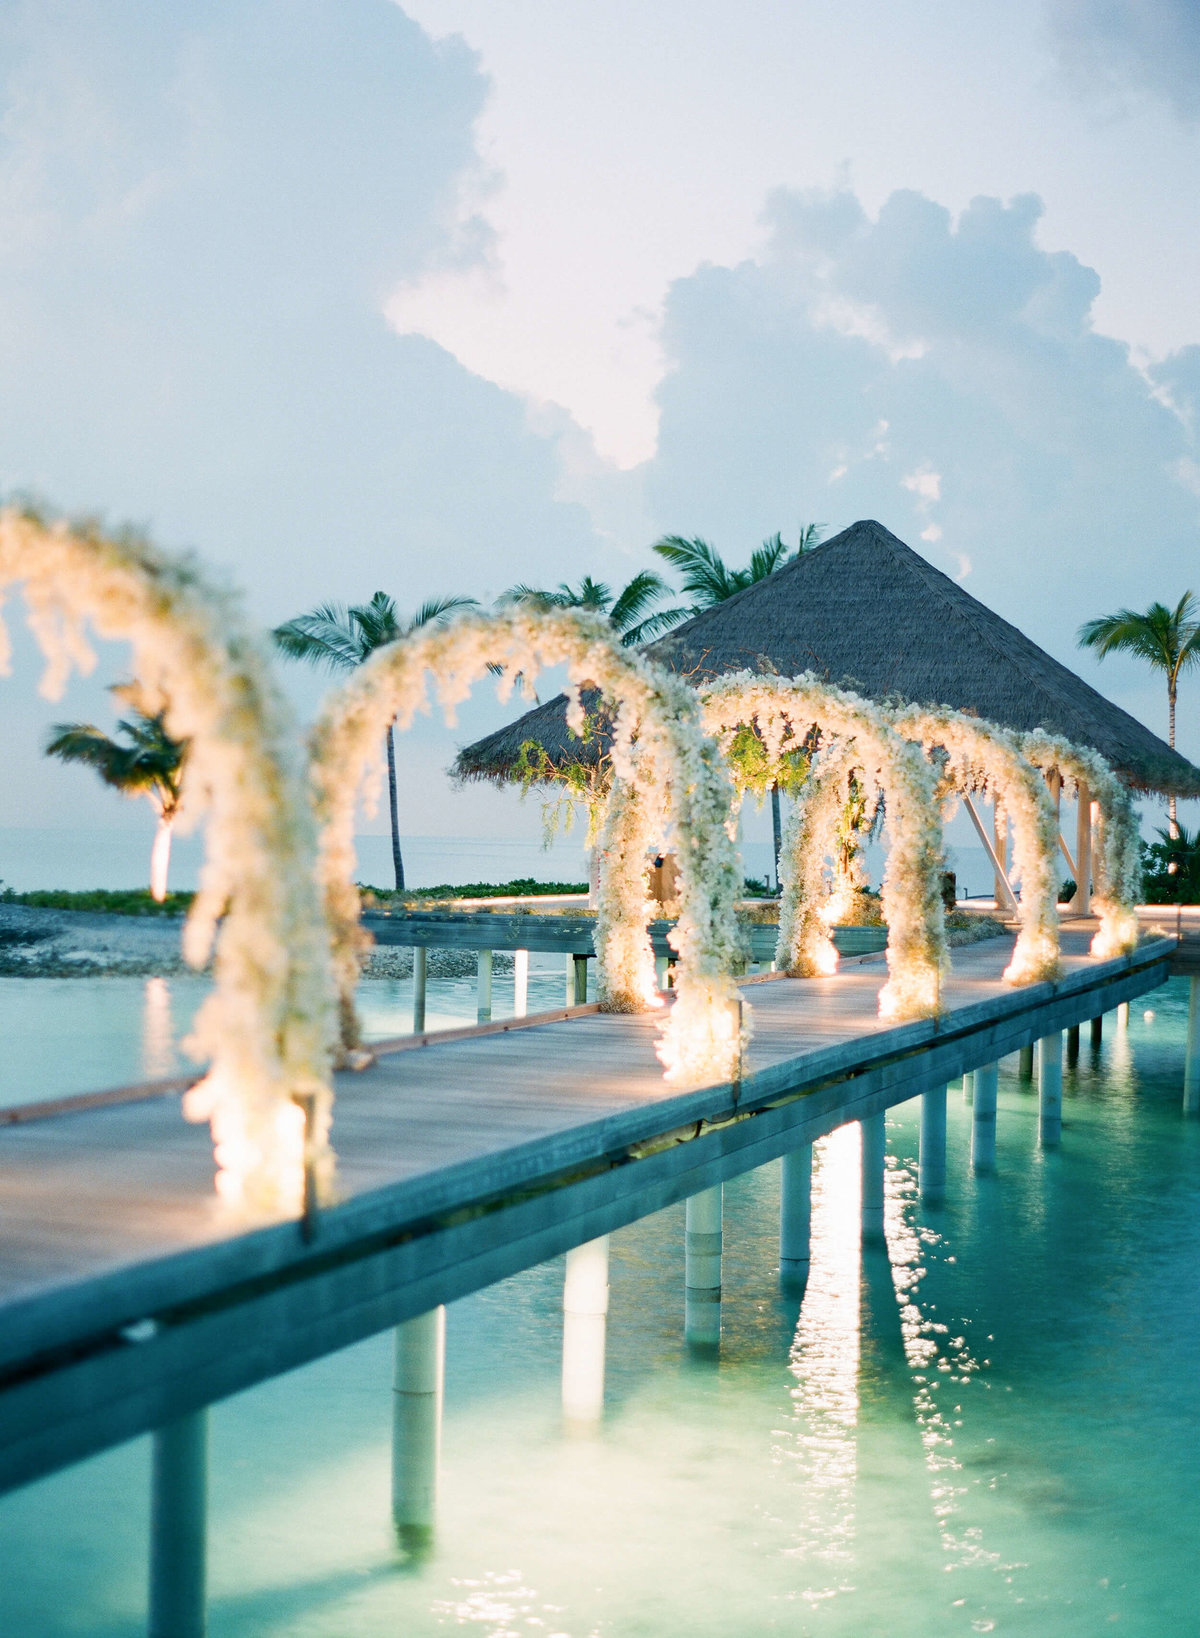 67-KTMerry-destinationwedding-evening-lighting-Maldives